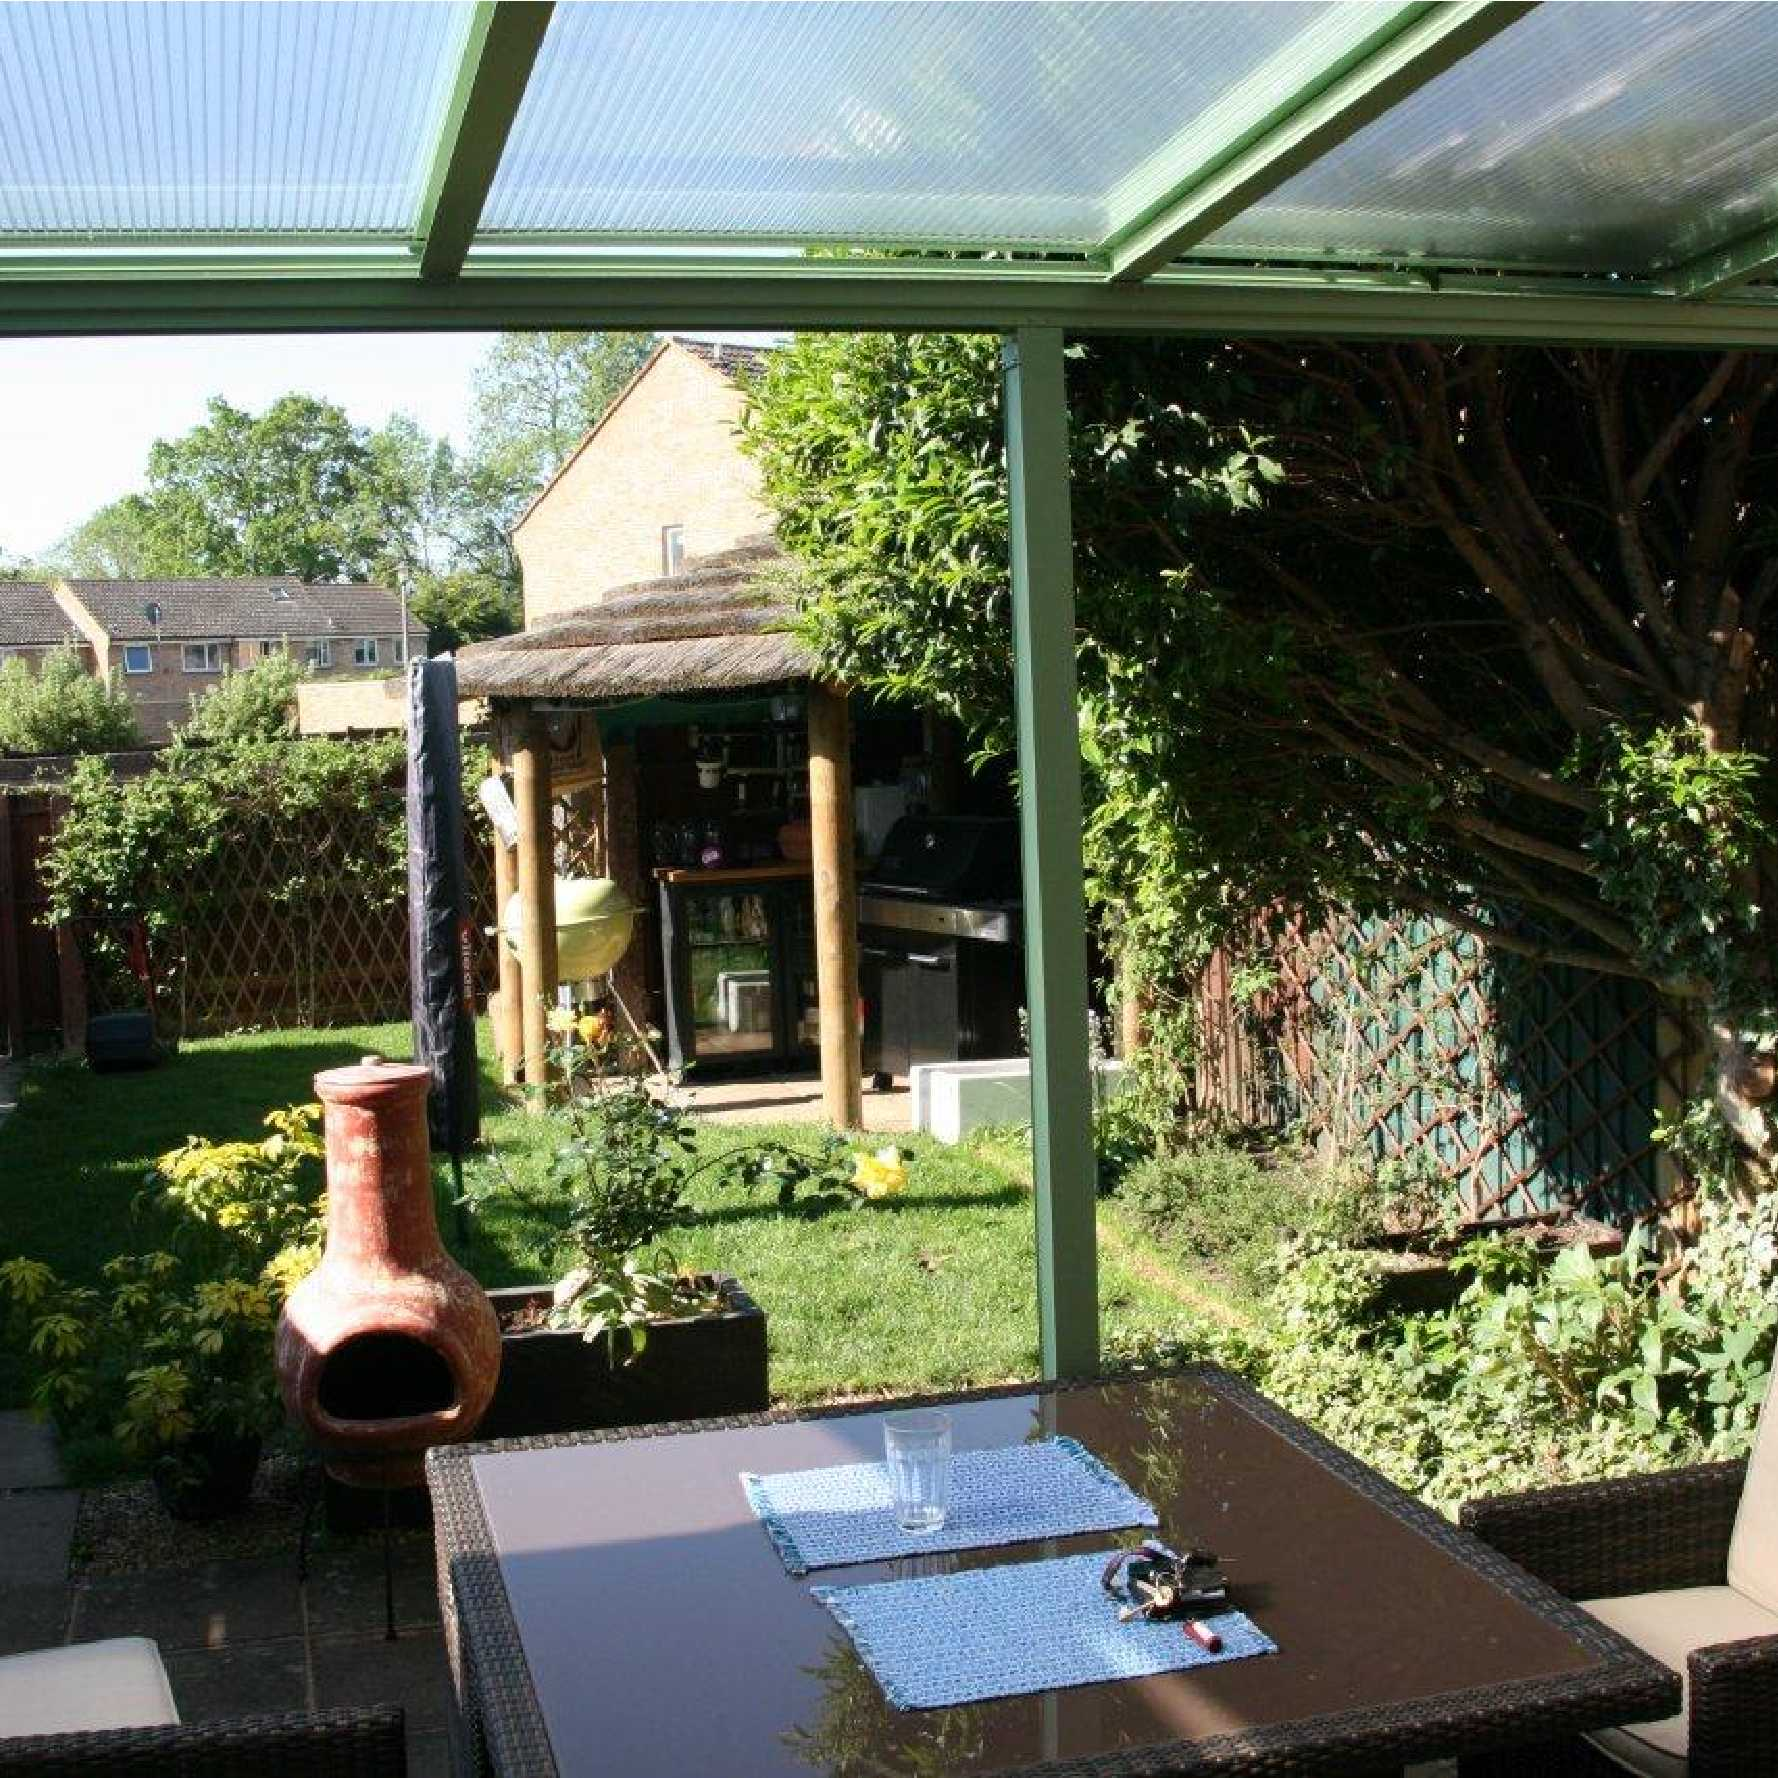 Affordable Omega Smart Lean-To Canopy with 16mm Polycarbonate Glazing - 6.0m (W) x 1.5m (P), (3) Supporting Posts